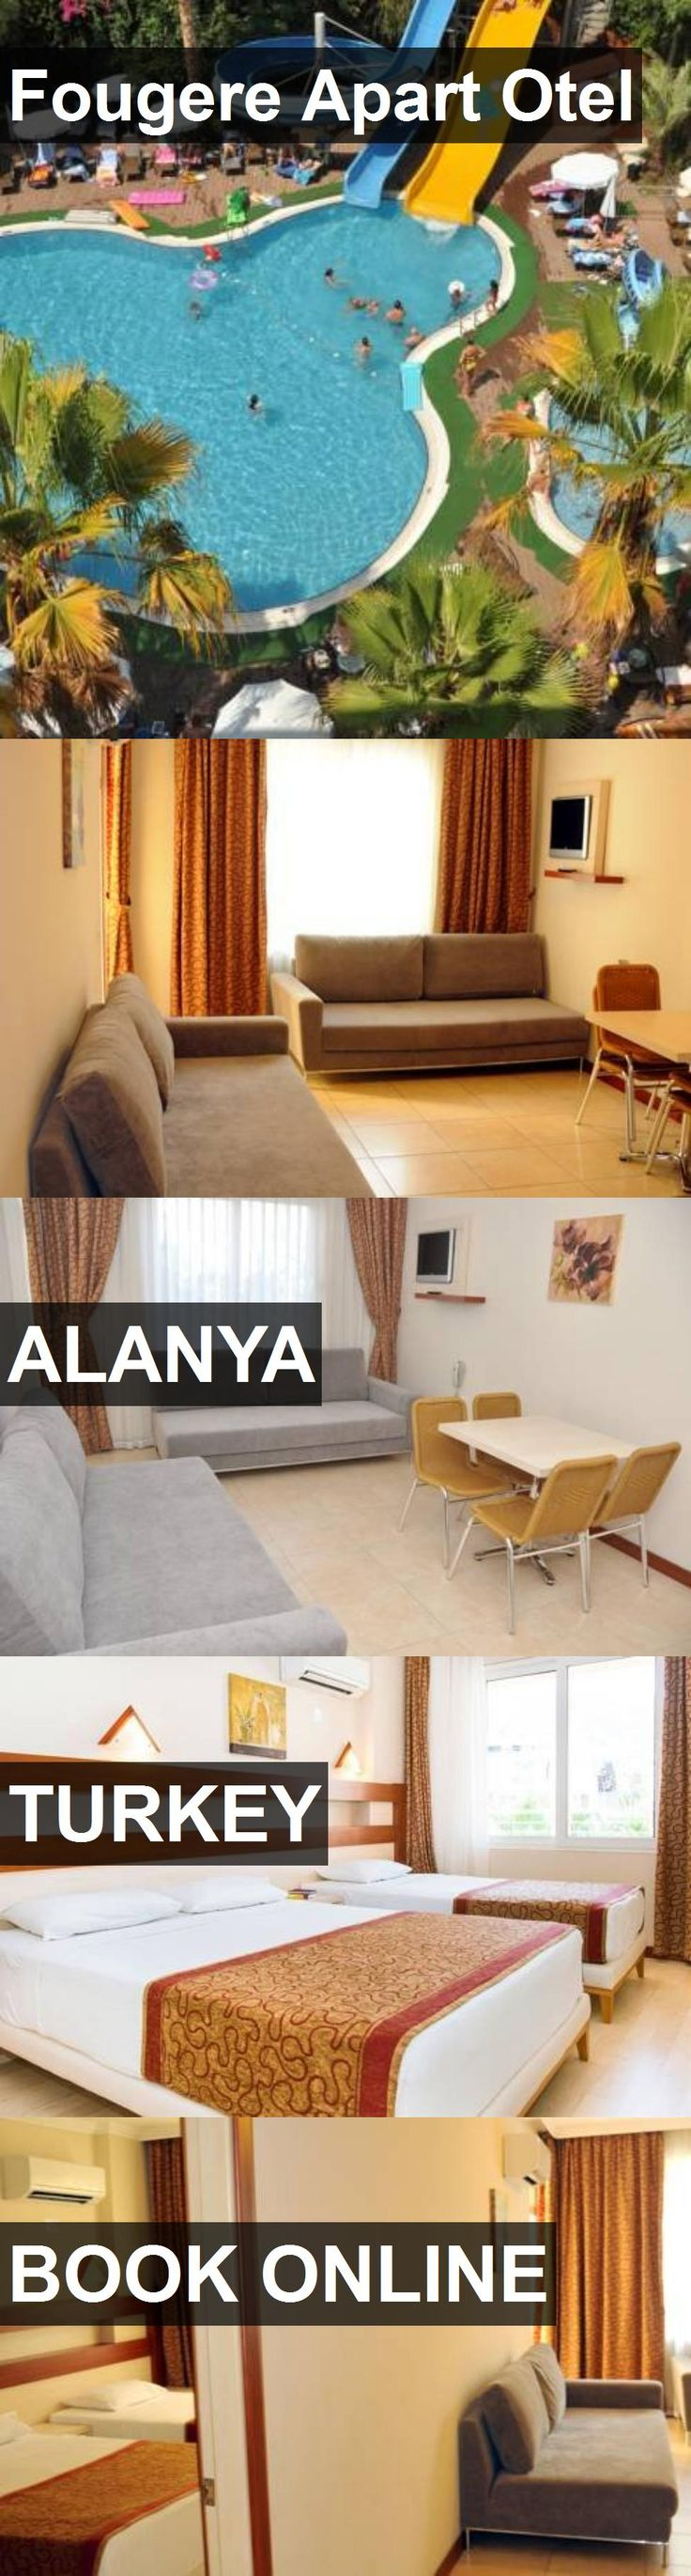 Hotel Fougere Apart Otel in Alanya, Turkey. For more information, photos, reviews and best prices please follow the link. #Turkey #Alanya #travel #vacation #hotel